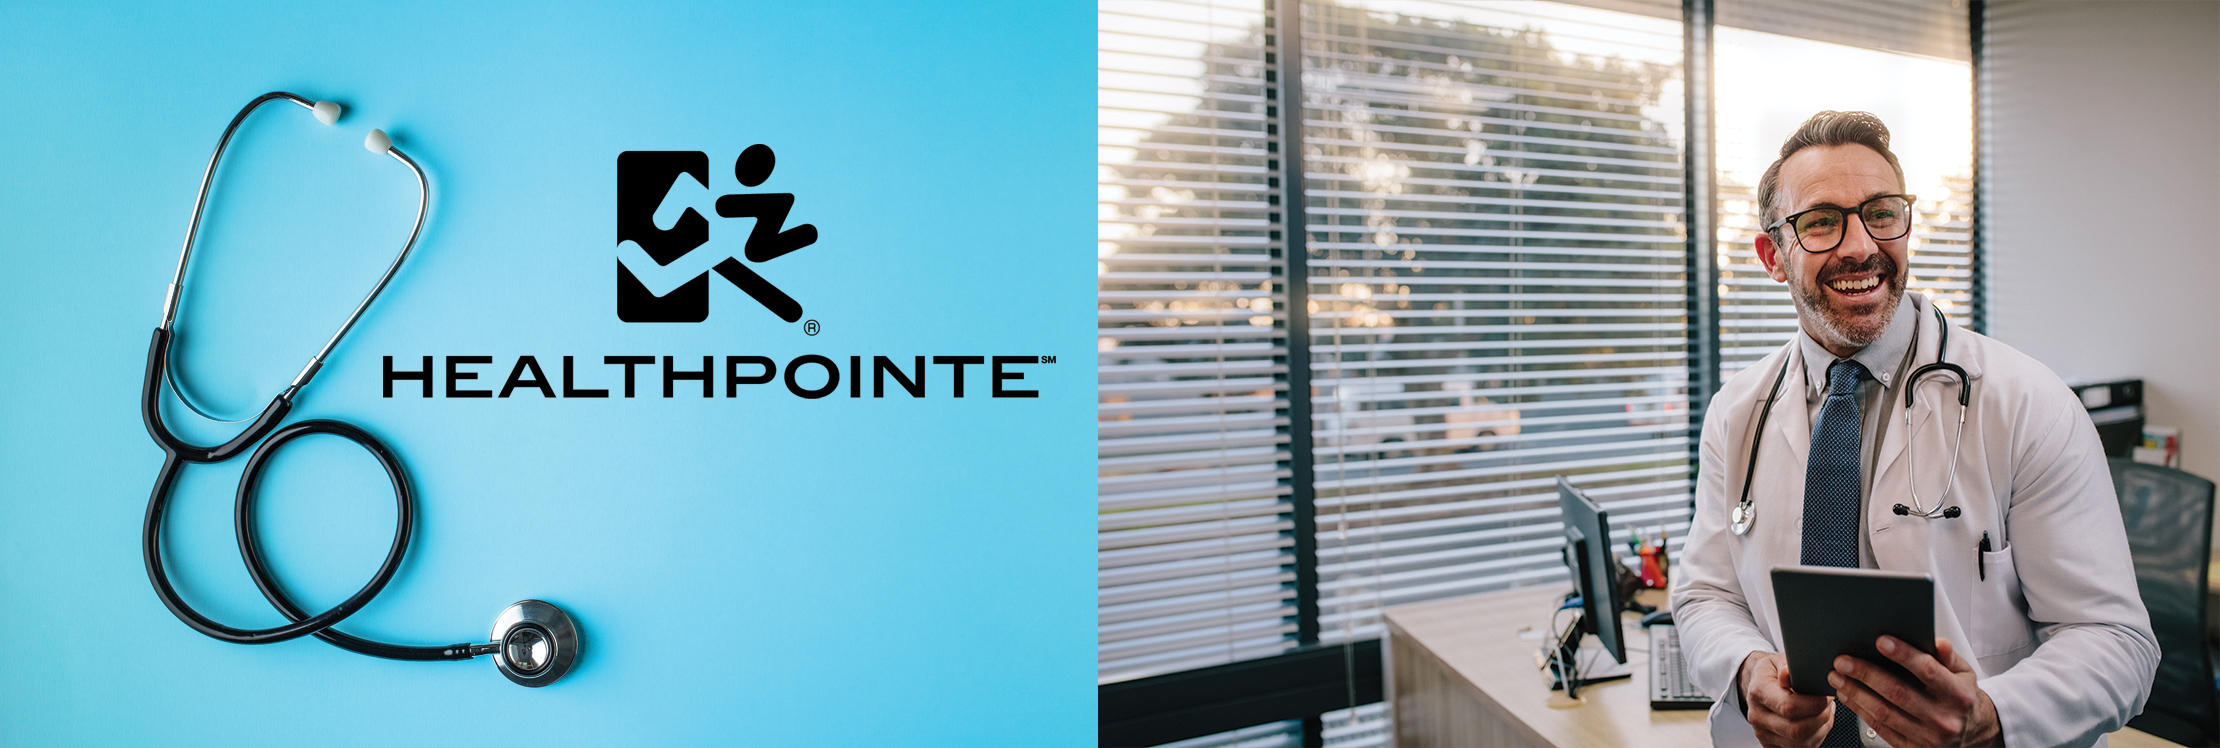 Healthpointe reviews   Medical Centers at 16702 Valley View Ave - La Mirada CA